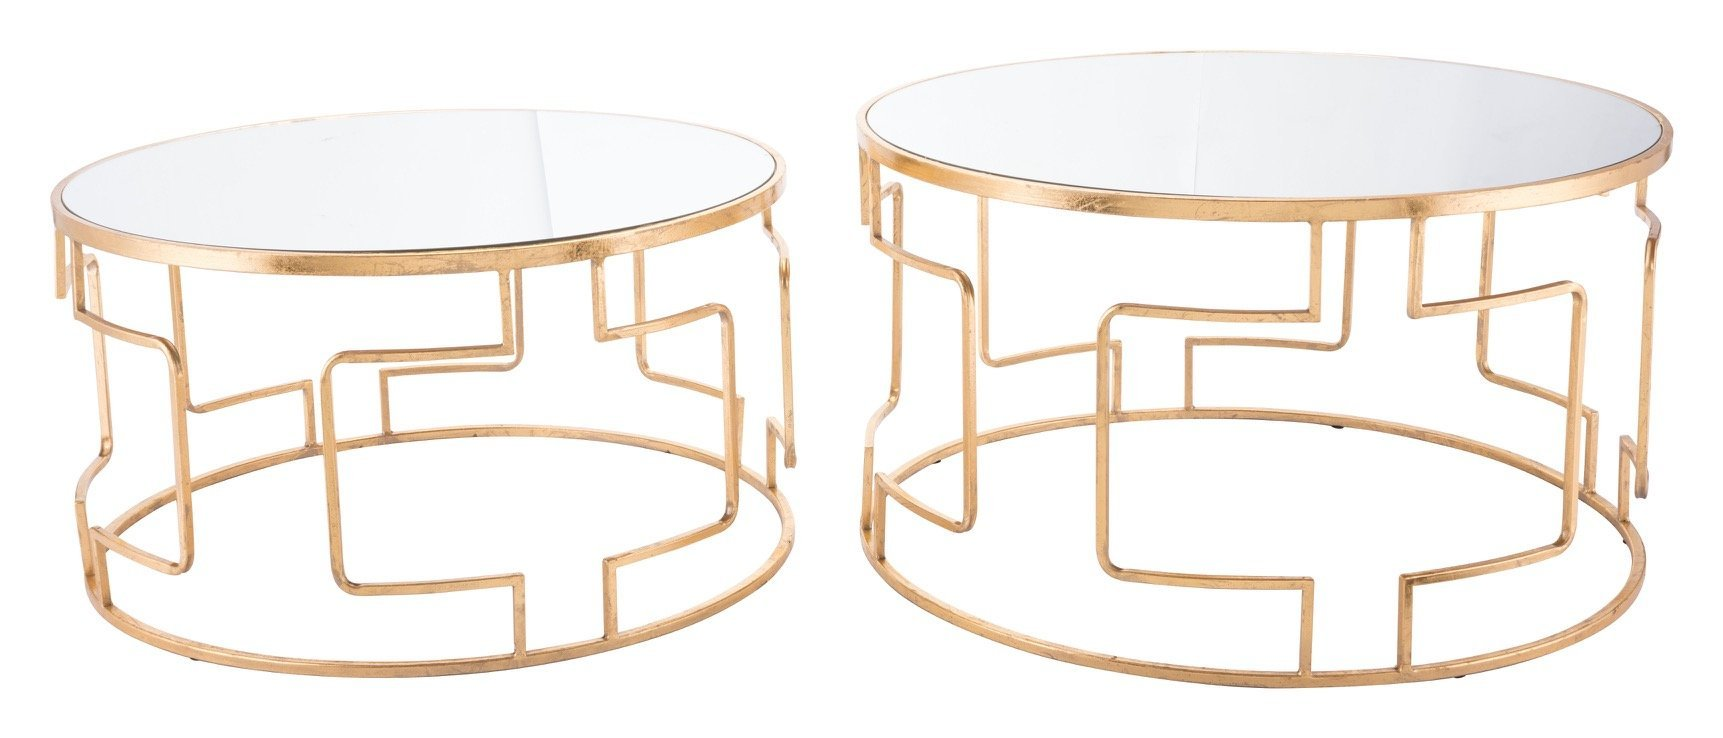 king round accent tables gold with mirrored glass top set side alan decor table wedge shaped end dale tiffany hummingbird lamp black coffee and threshold nightstand square marble